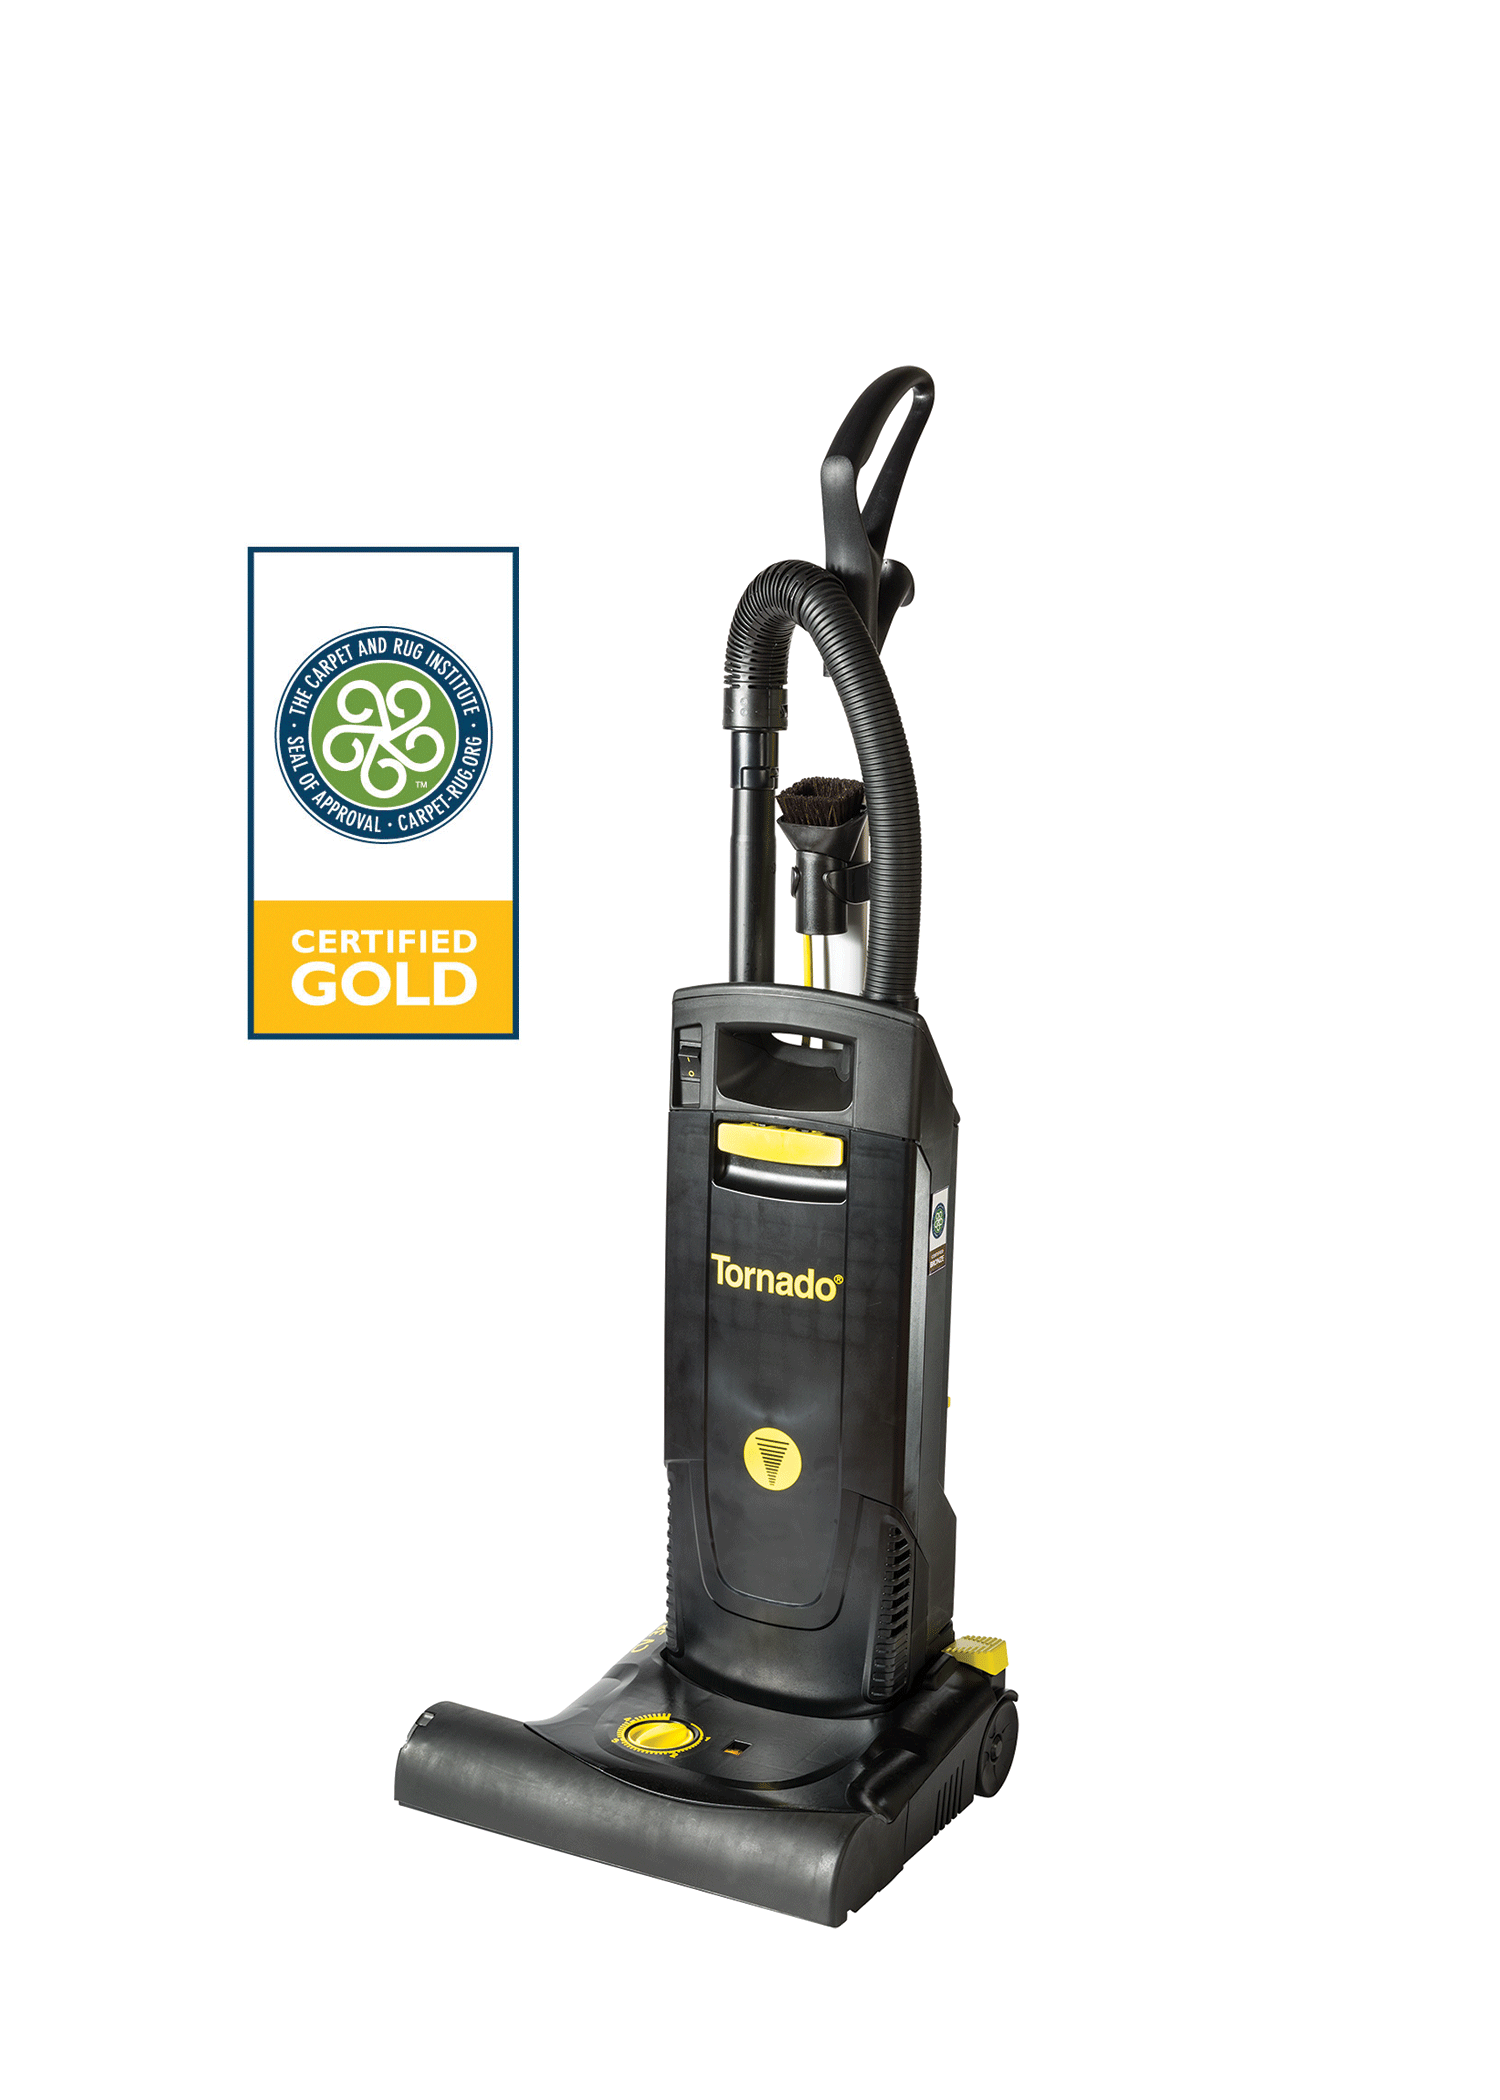 Carpet Cleaning Vacuum Tornado Cv 38